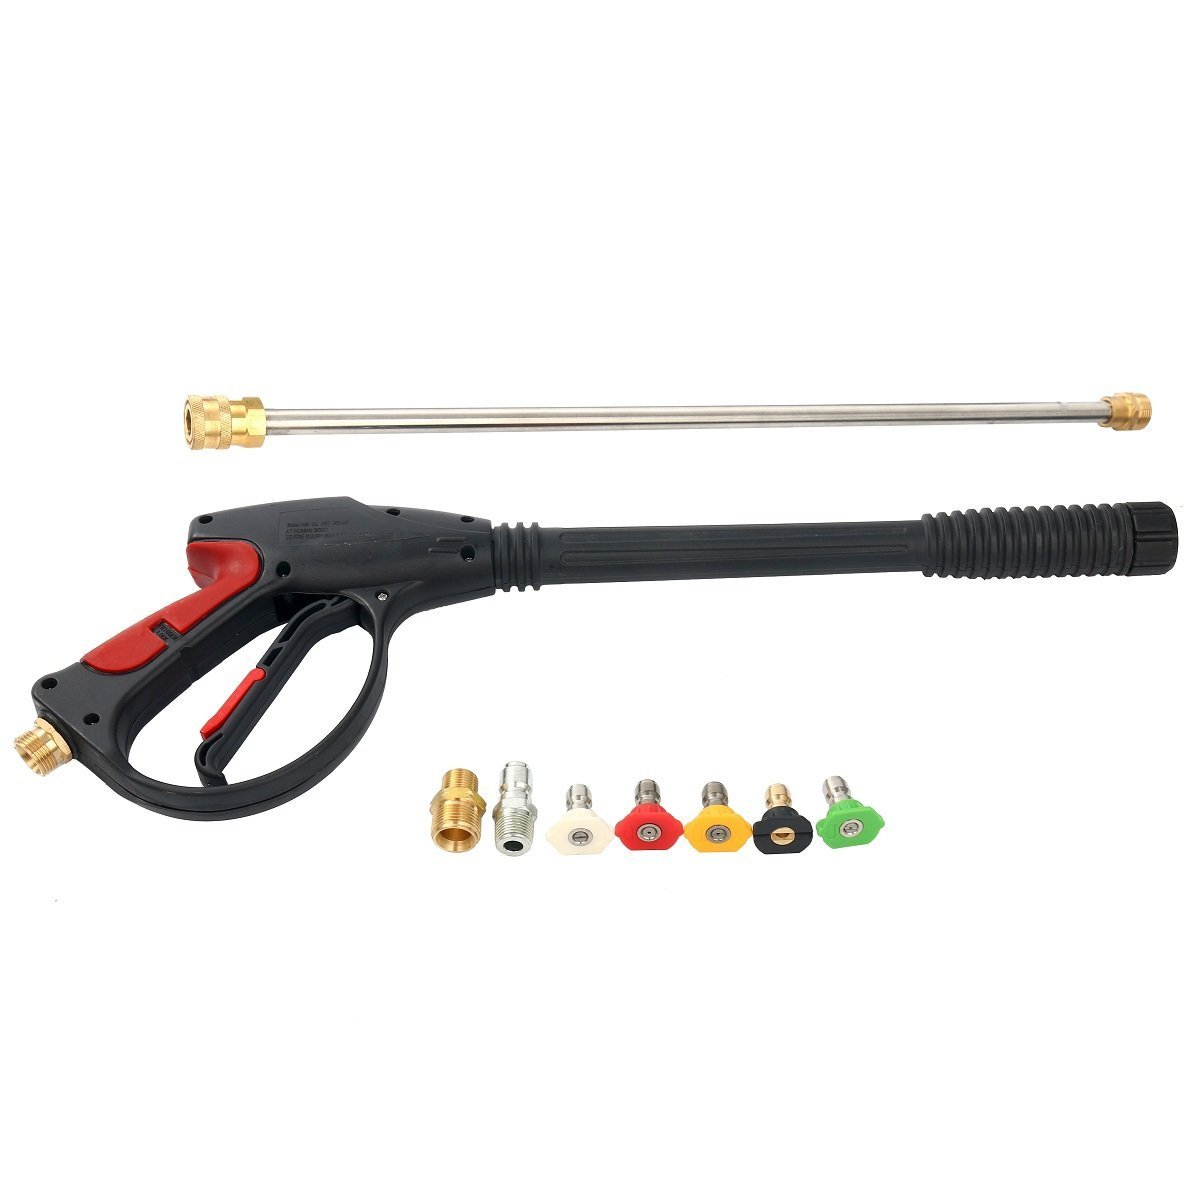 8MILELAKE 8milake 4000 PSI Pressure Washer Gun Kit with Male Metric Adapters & 4 Nozzles and 1 soap Nozzle for Car Pressure Power Washers